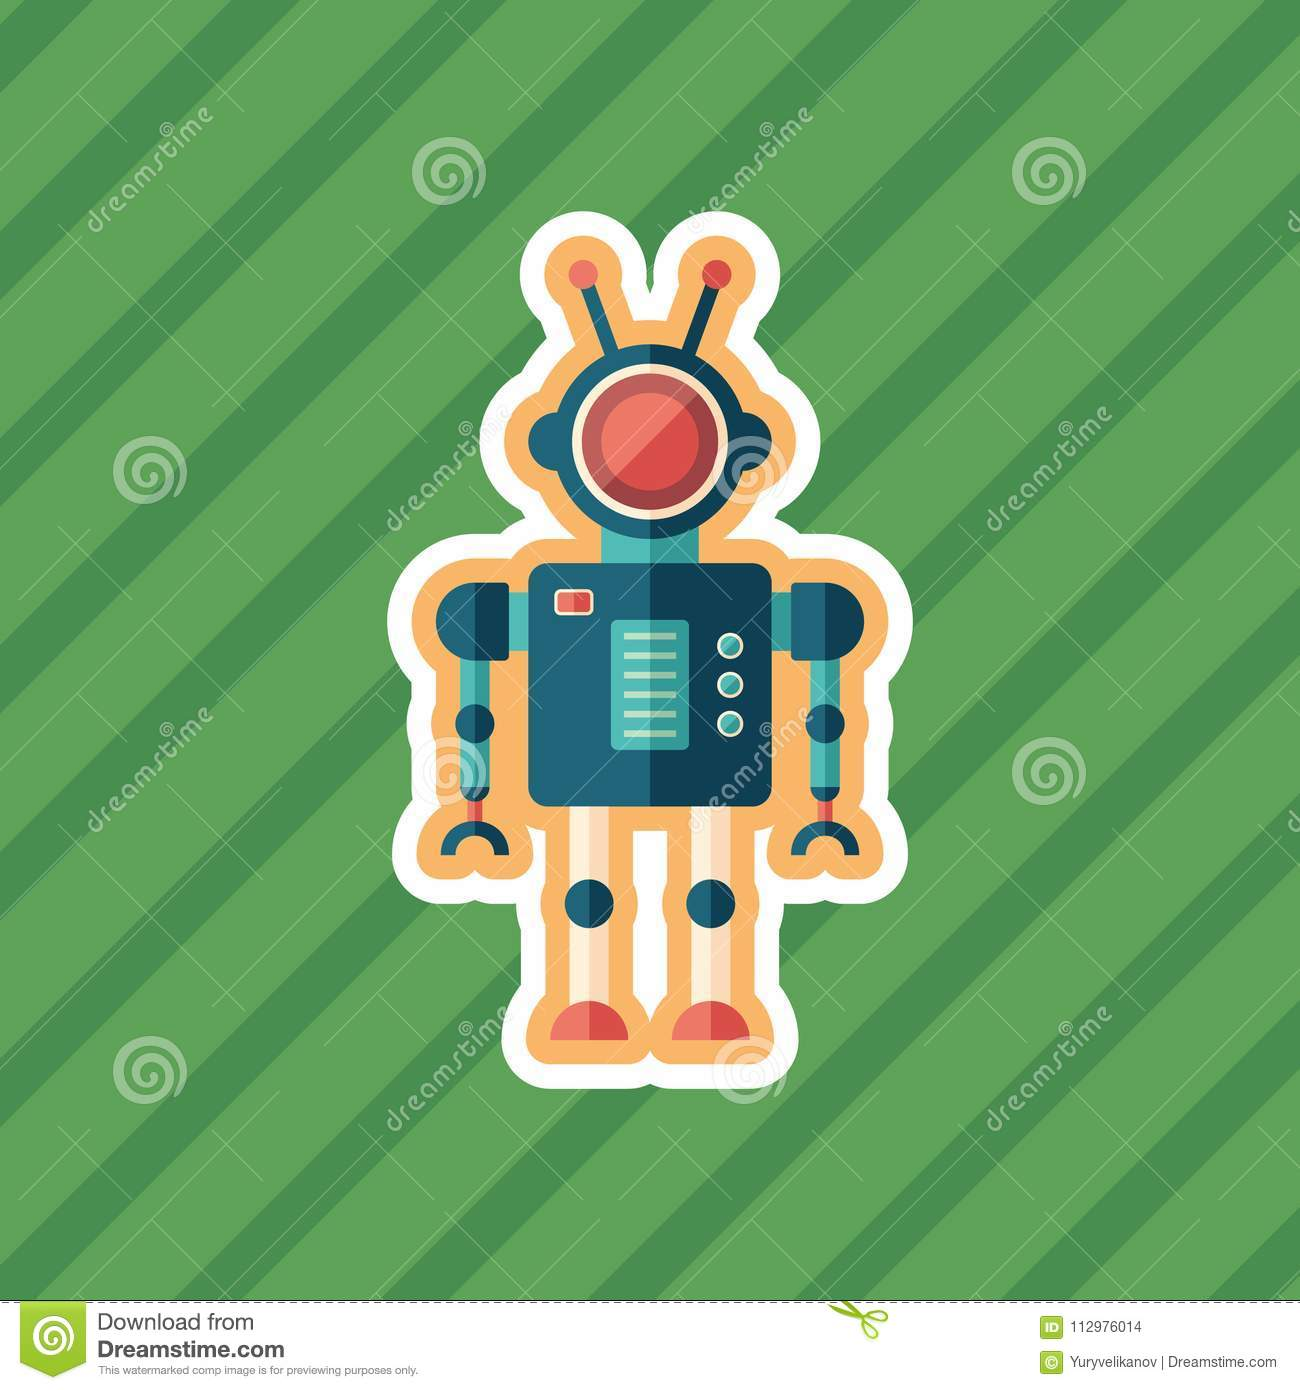 Robot administrator sticker flat icon with color background.